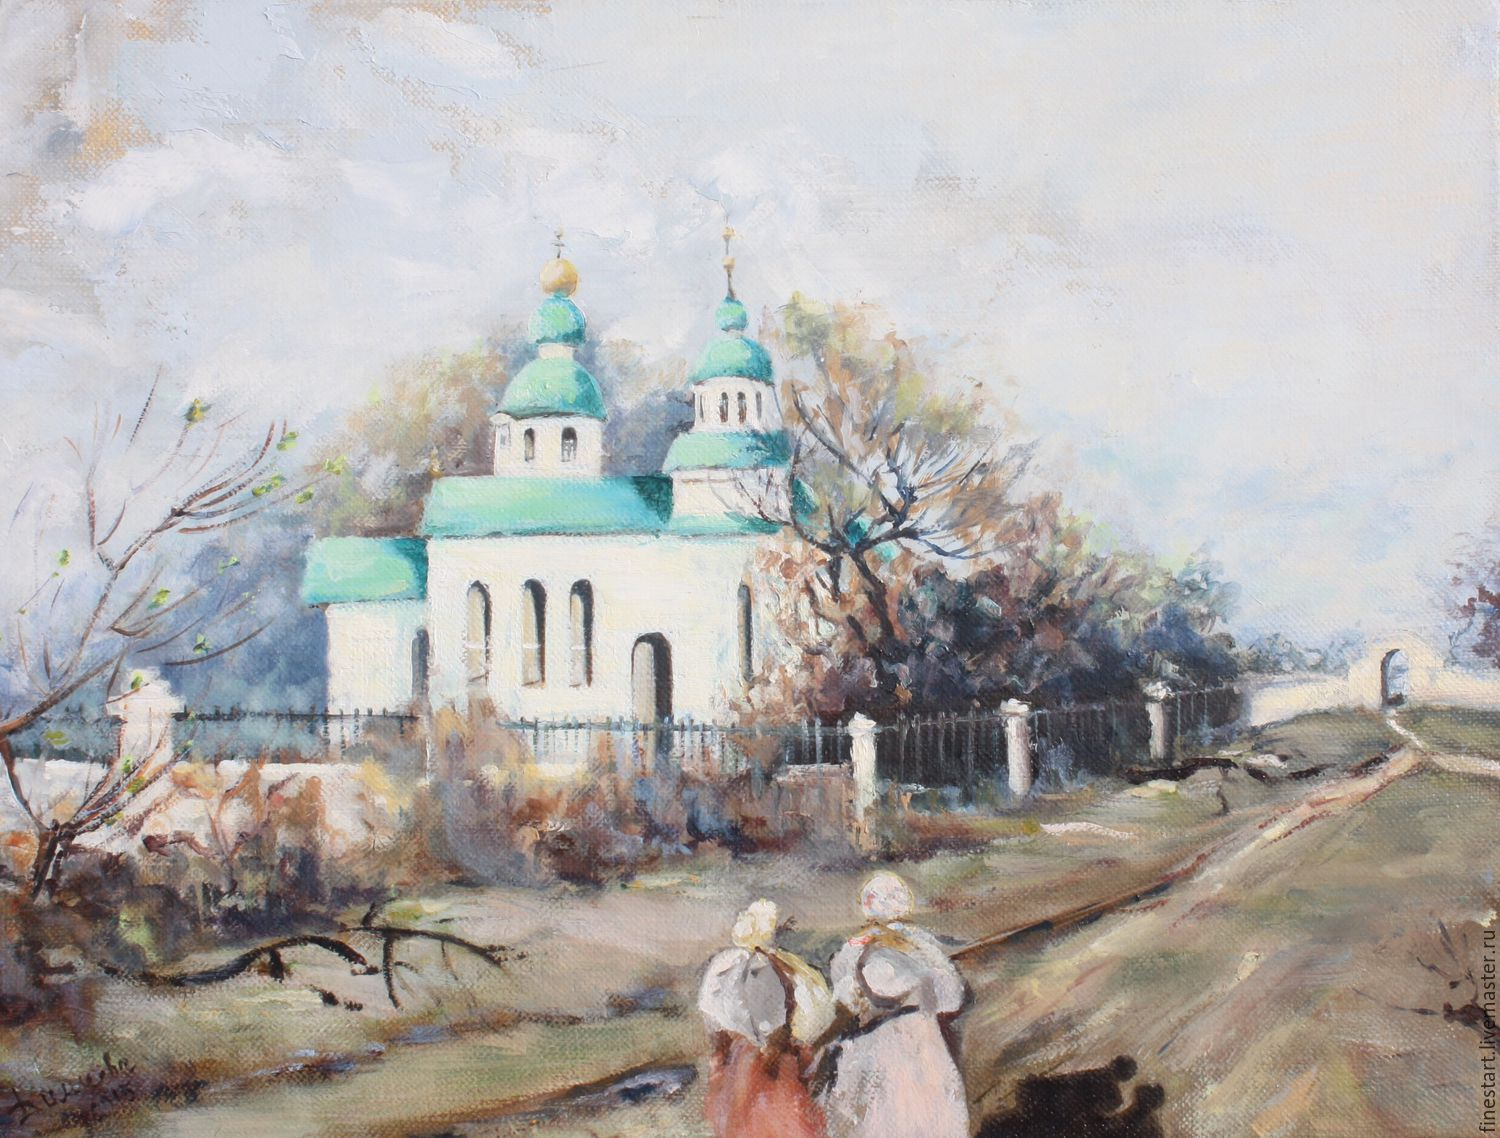 Oil painting landscape oil Painting Spring in sredneye. Oil painting Buy oil painting